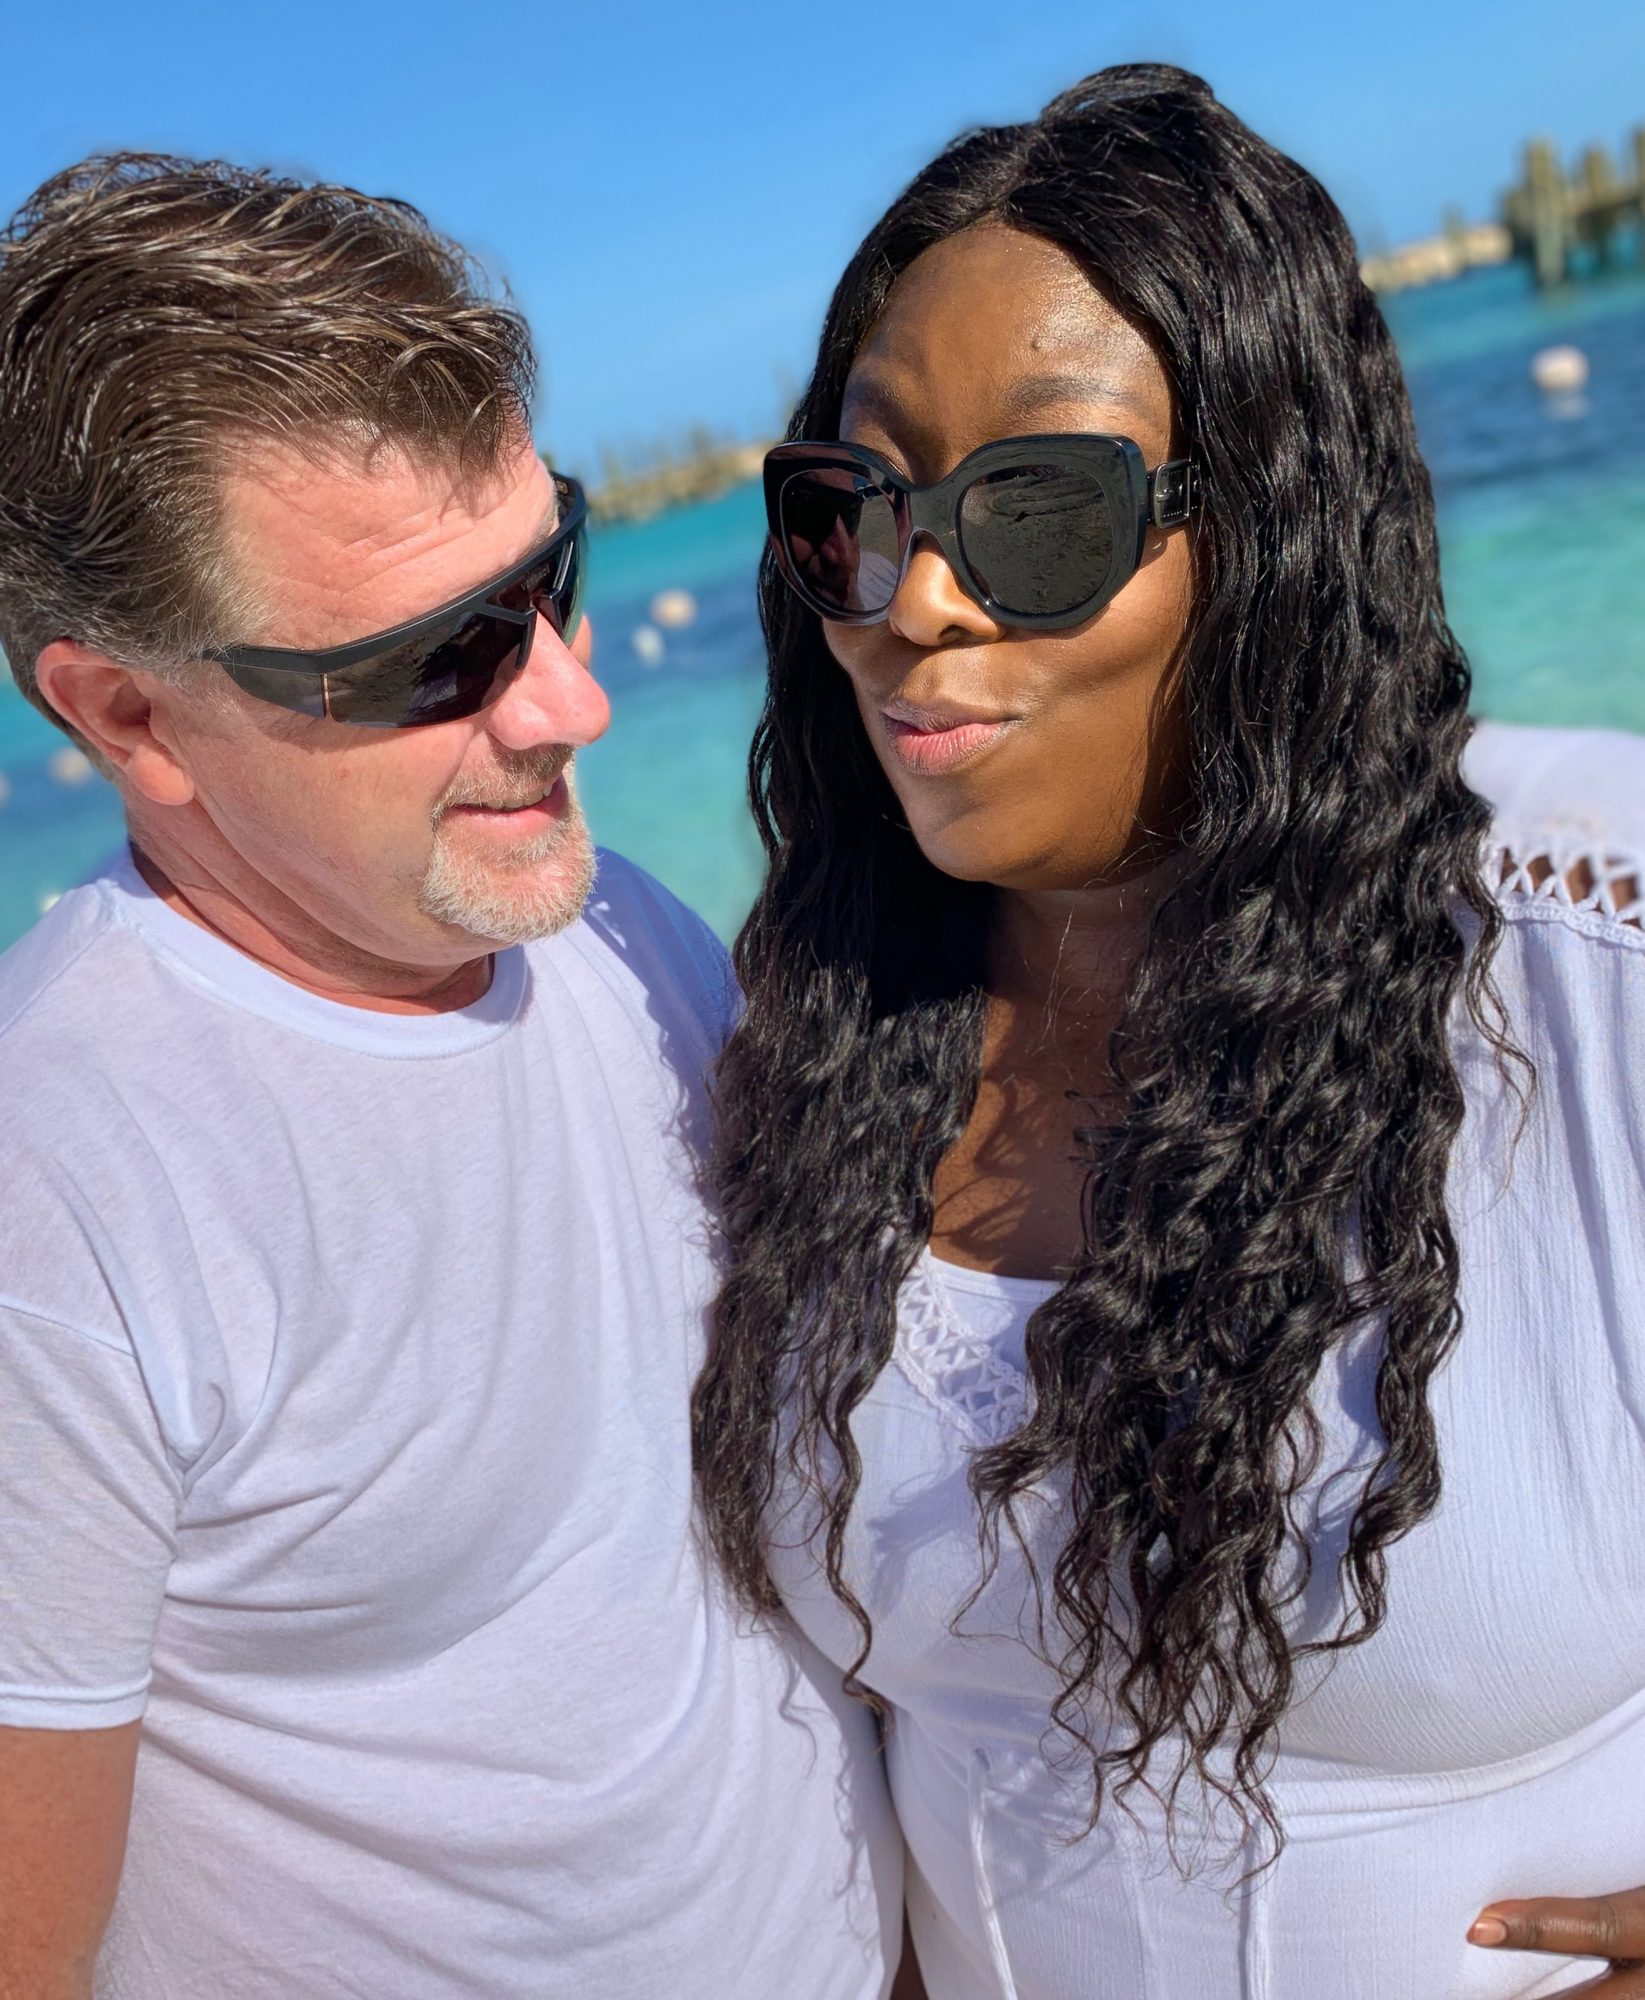 Loni Love personal images with JamesBaha Mar in The Bahamas bringing in 2019